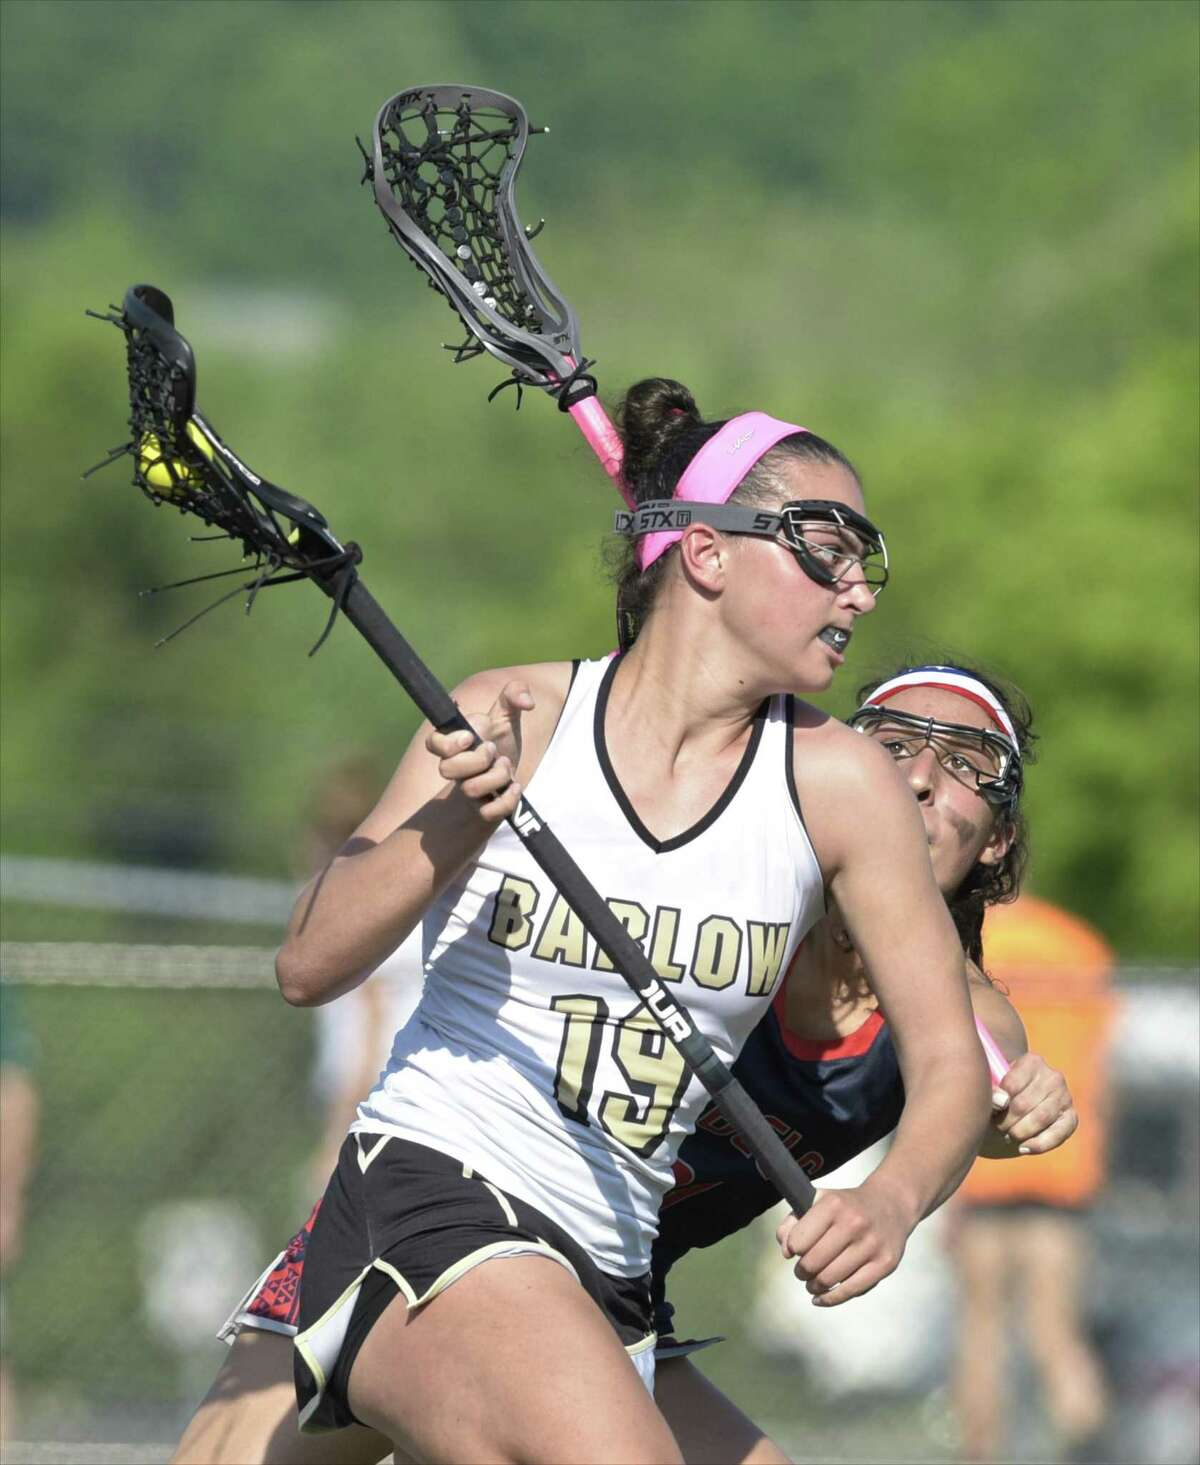 Joel Barlow's Bella Miceli (19) moves with the ball while being defended by New Fairfield's Sophia Kleopaulos (21) in the girls SWC lacrosse championship game between New Fairfield and Joel Barlow high schools, Friday afternoon, May 25, 2018, at New Milford High School, New Milford, Conn. New Fairfield defeated Joel Barlow 20-14 to win the SWC girls lacrosse championship.